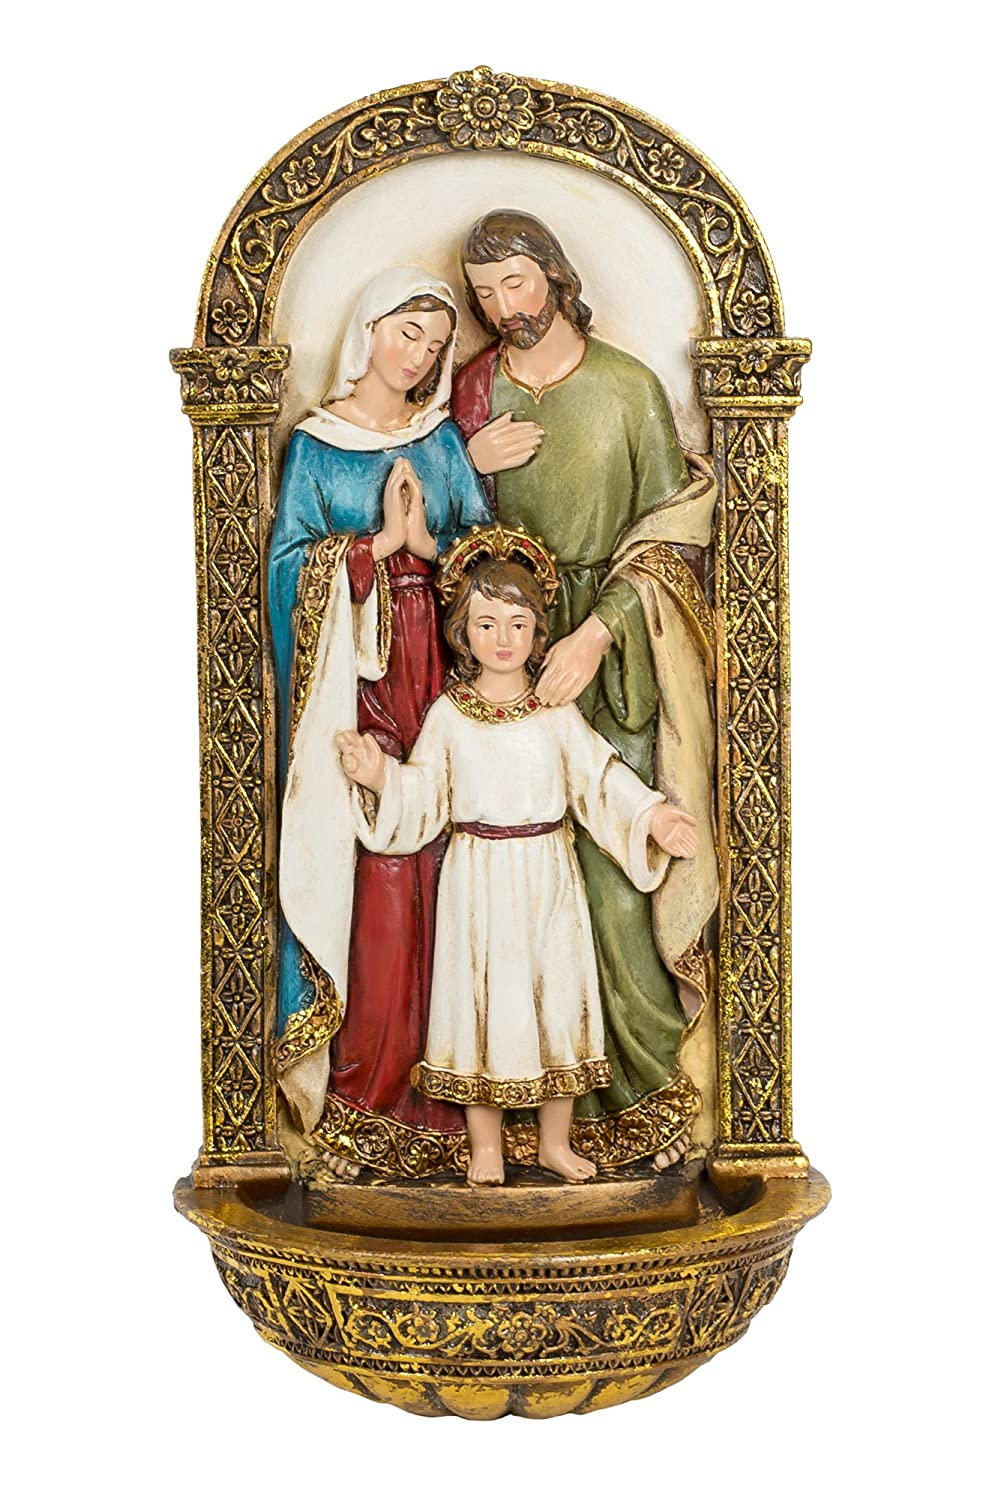 Vibrant Holy Family Gold Filigree 8 x 4 Inch Decorative Hanging Wall Figurine